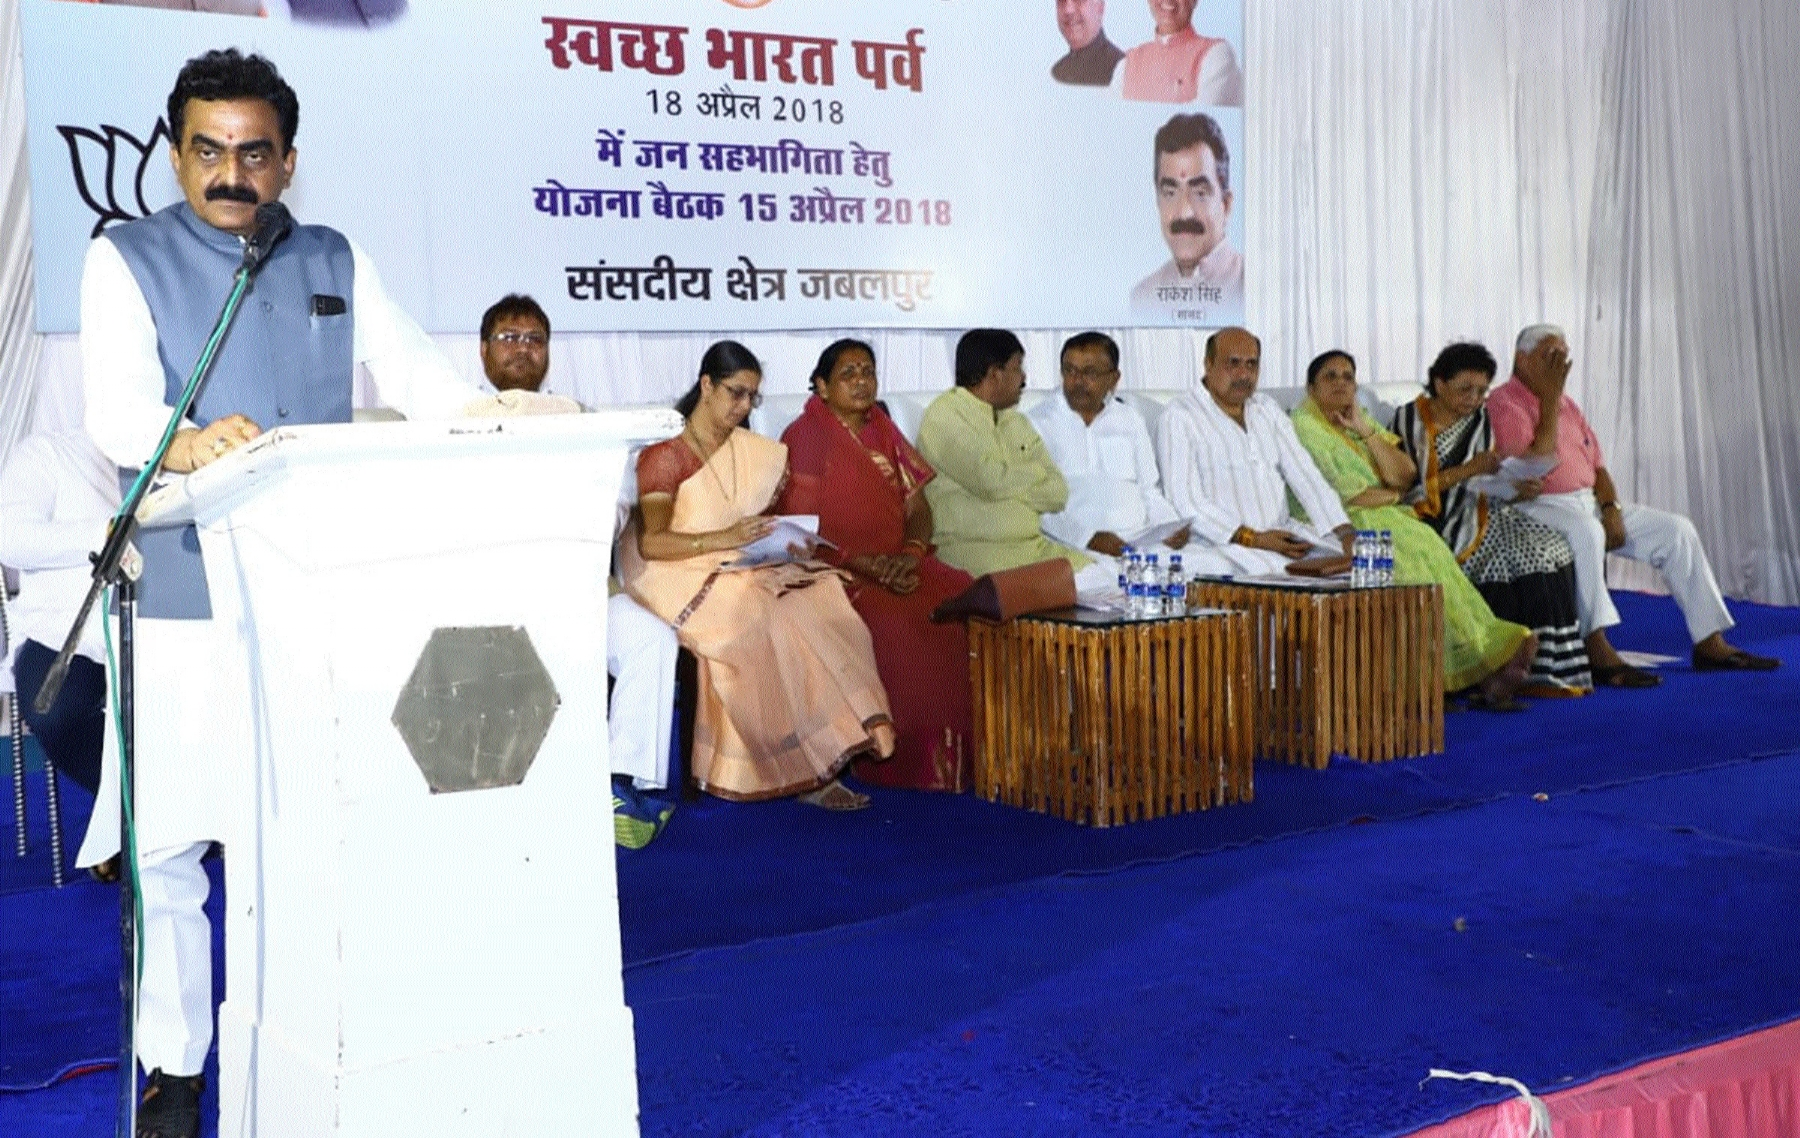 Preparations for 'Swachh Bharat Parv' discussed